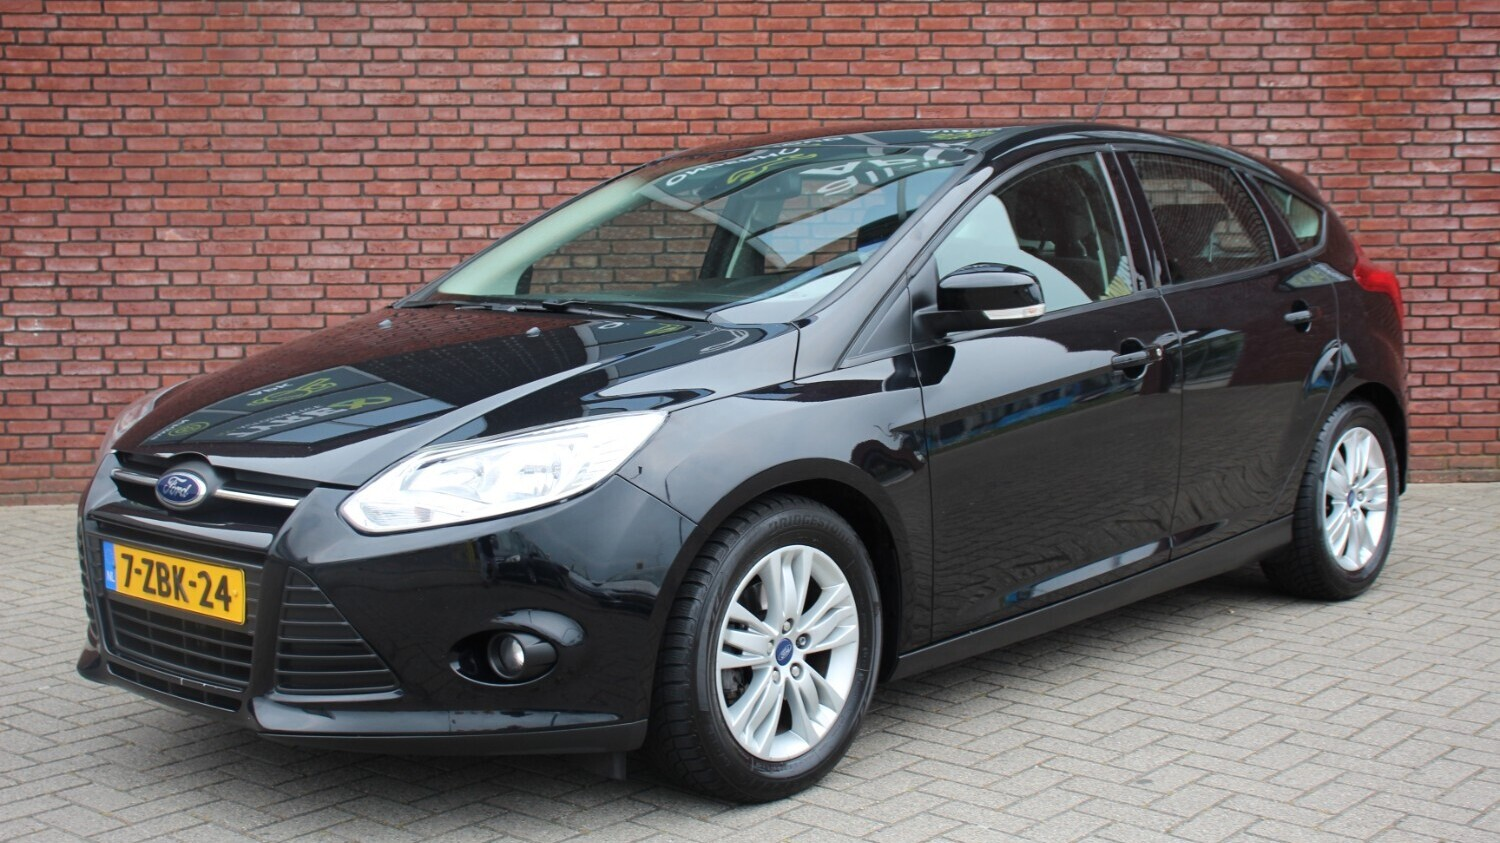 Ford Focus Hatchback 2012 7-ZBK-24 1